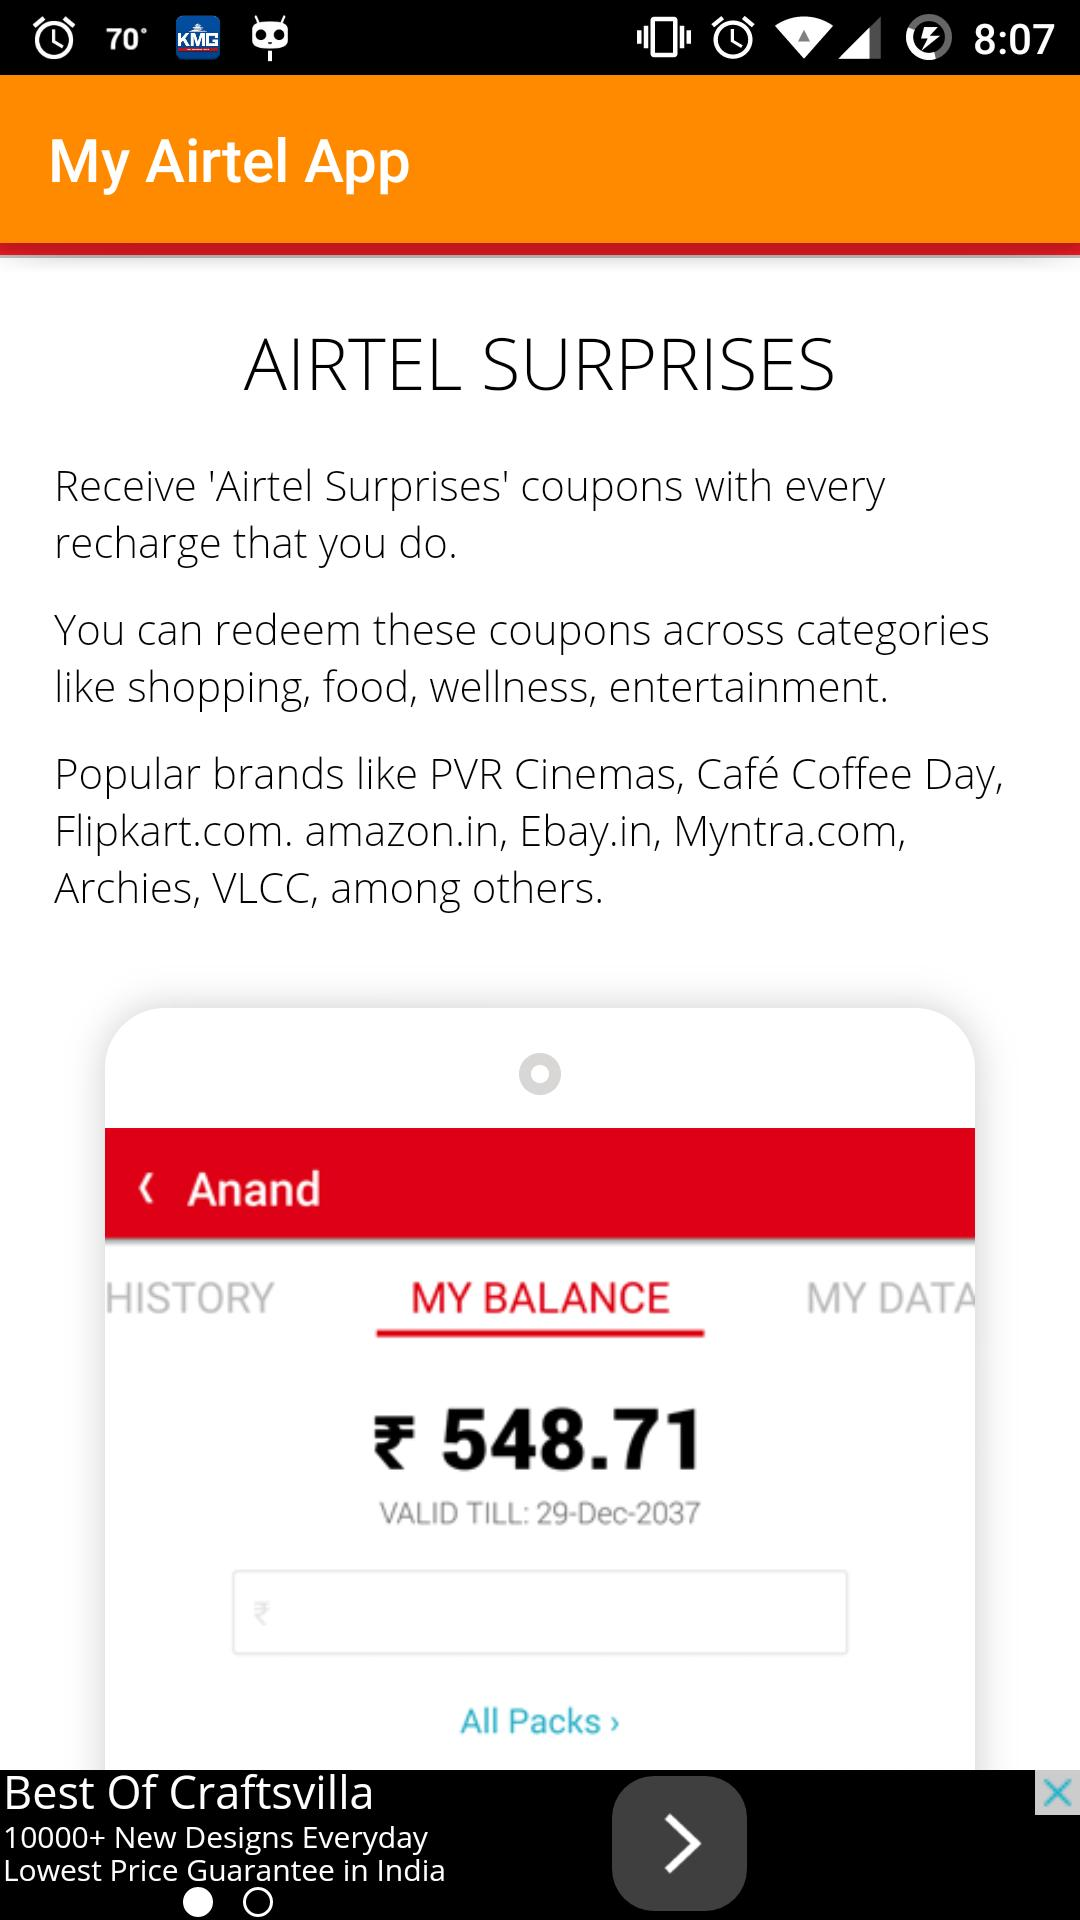 My Airtel App for Android - APK Download